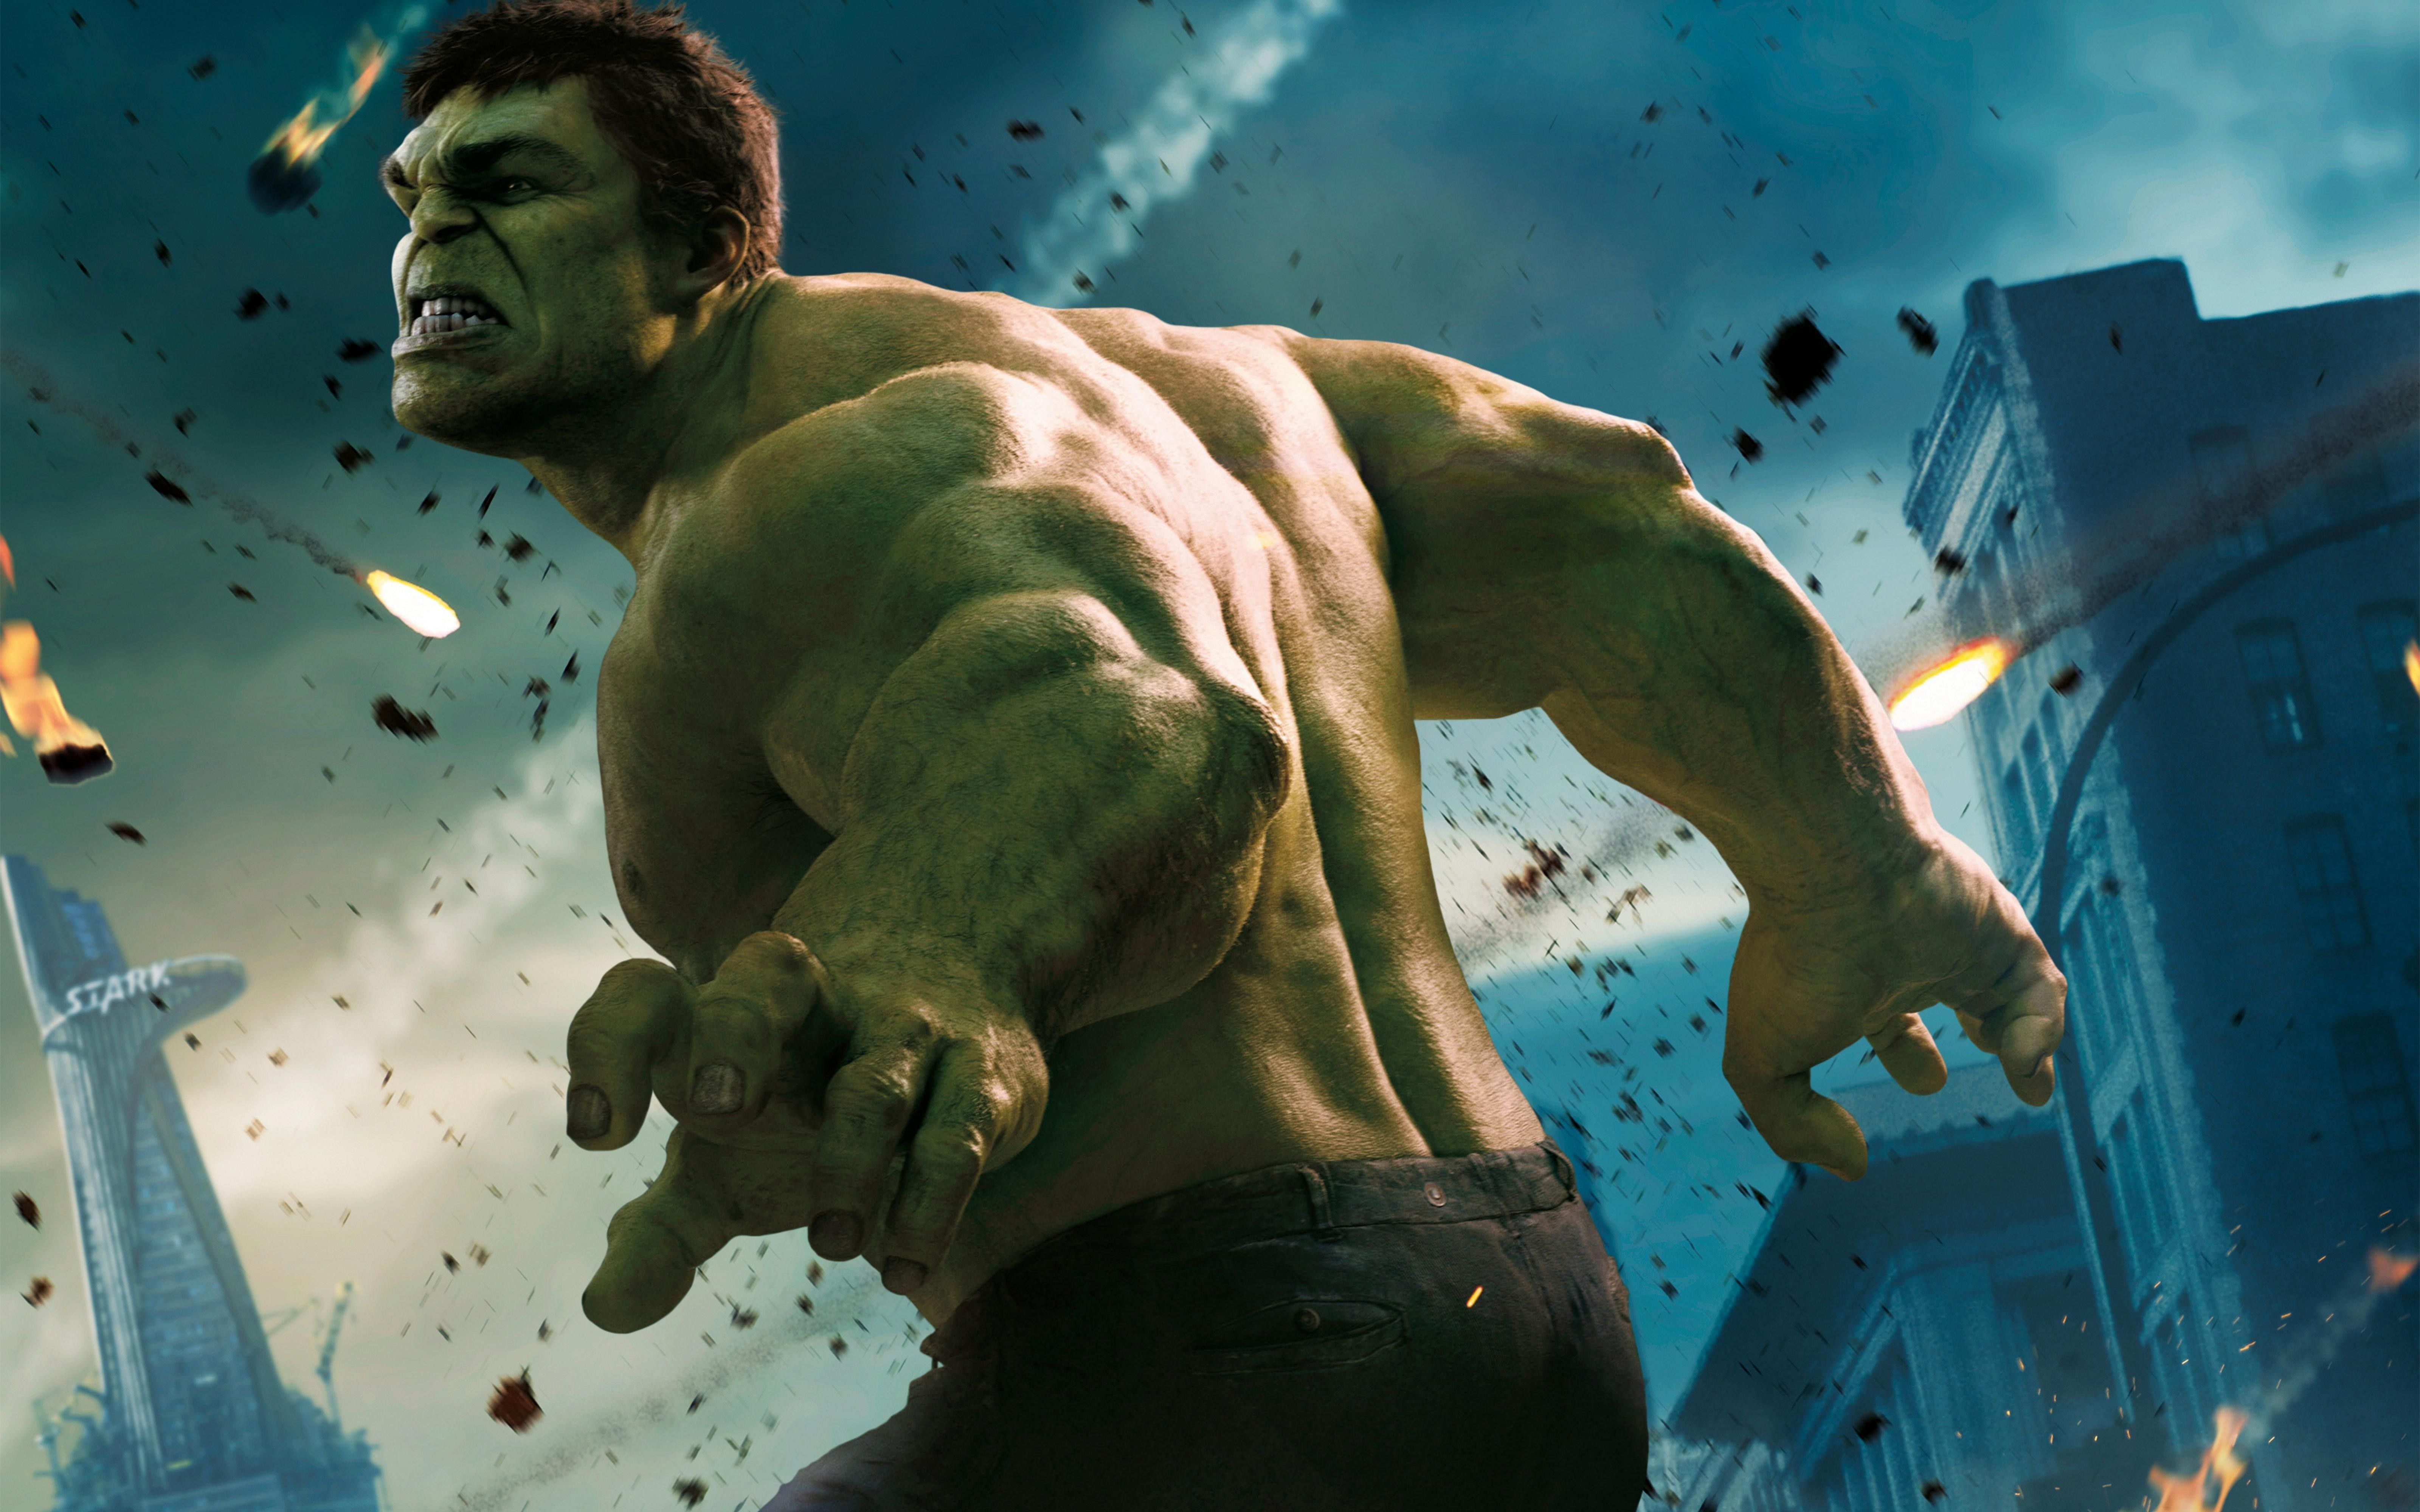 Character mark ruffalo the avengers movie artwork wallpapers